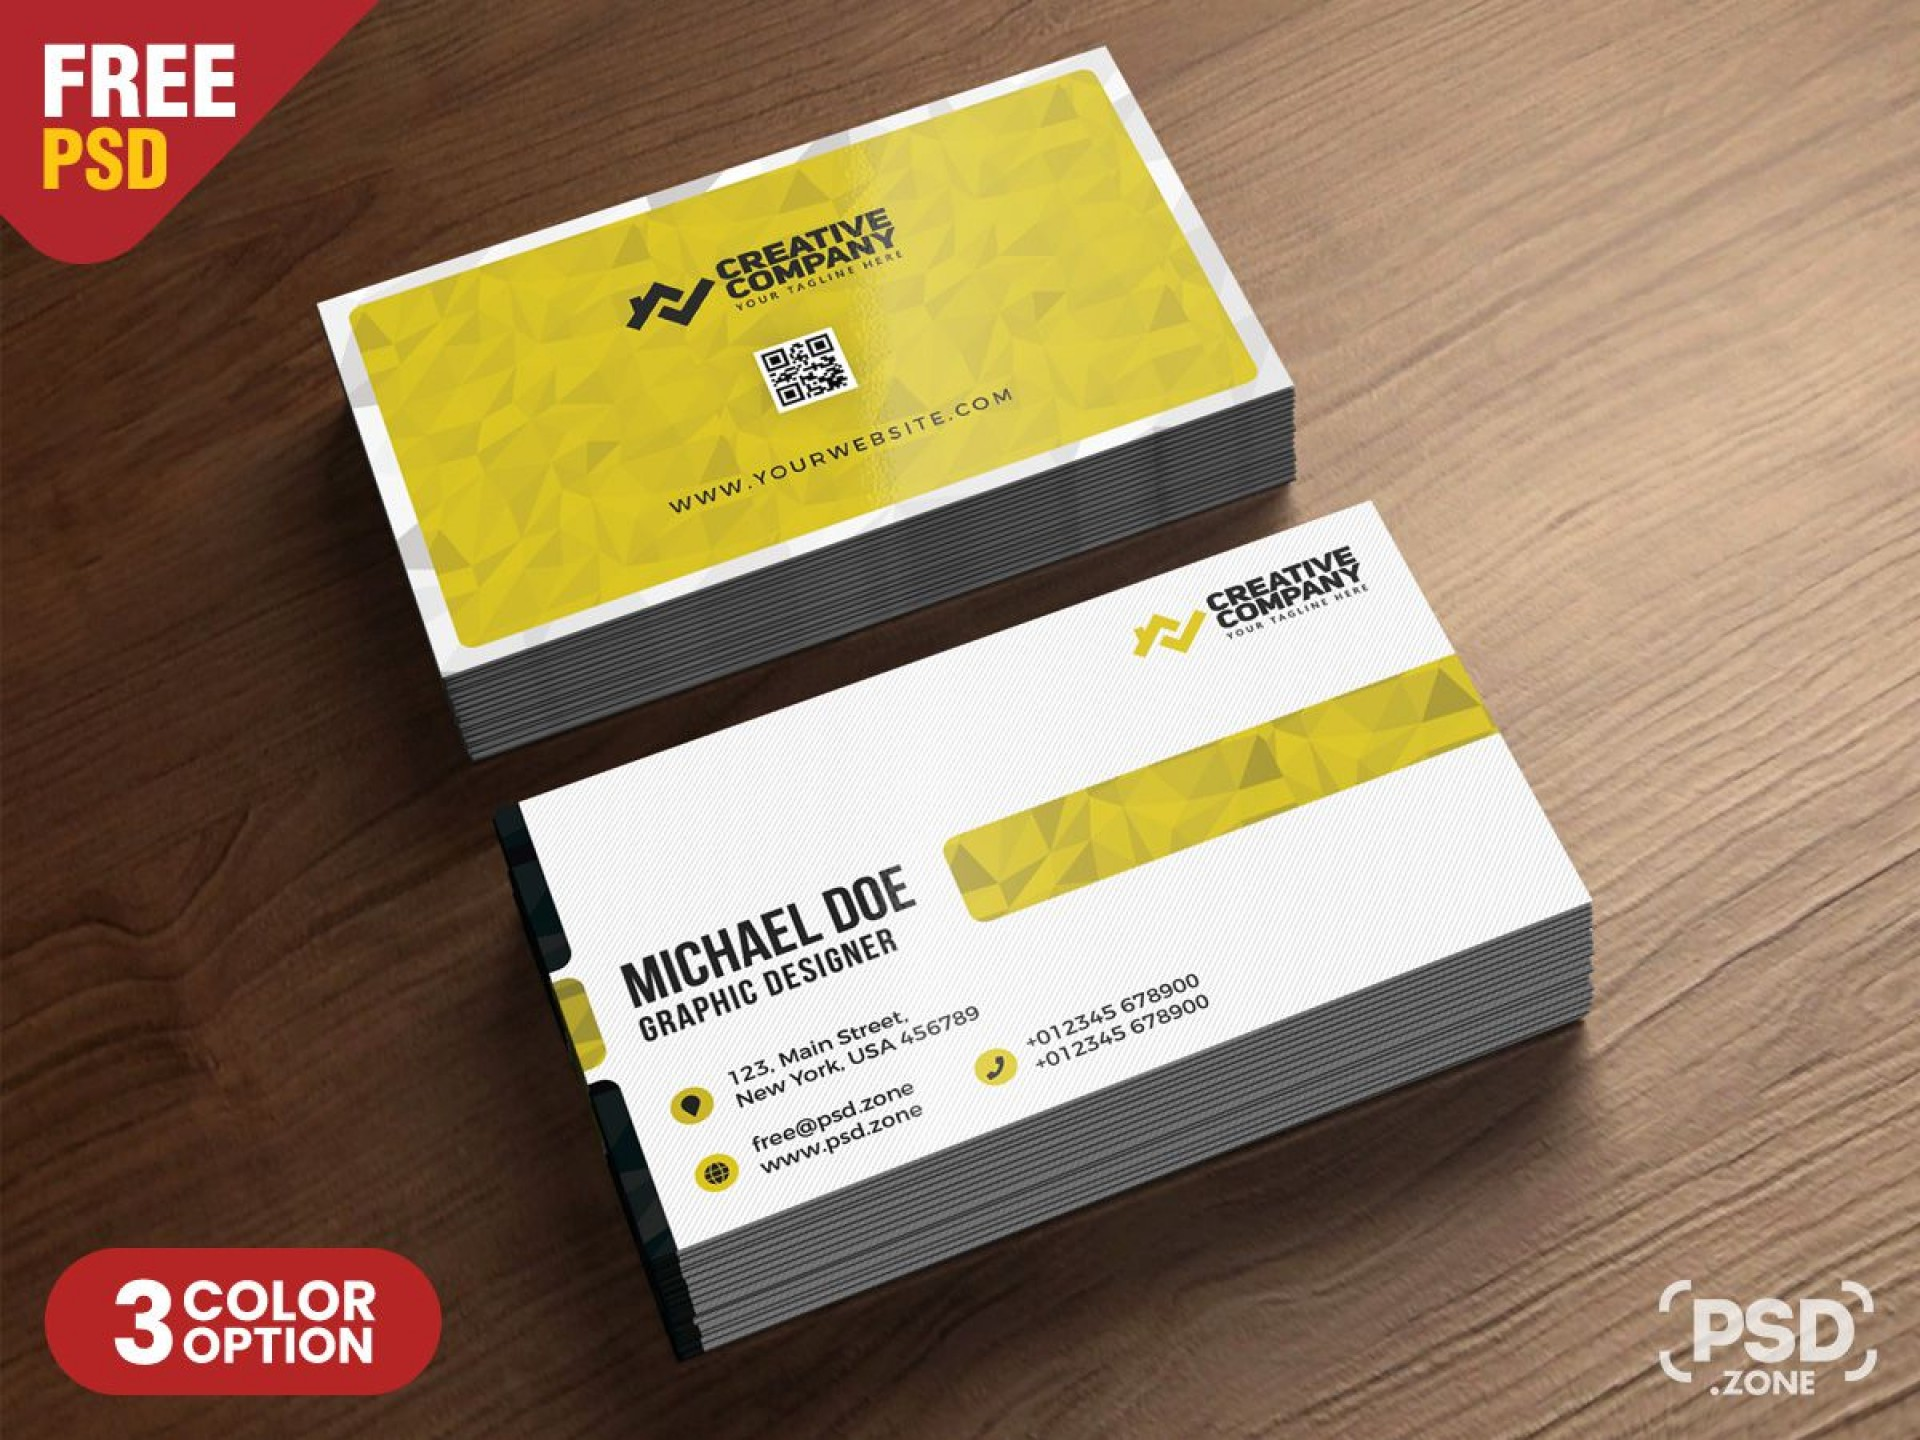 009 Unbelievable Simple Busines Card Template Psd High Definition  Design In Photoshop Minimalist Free1920